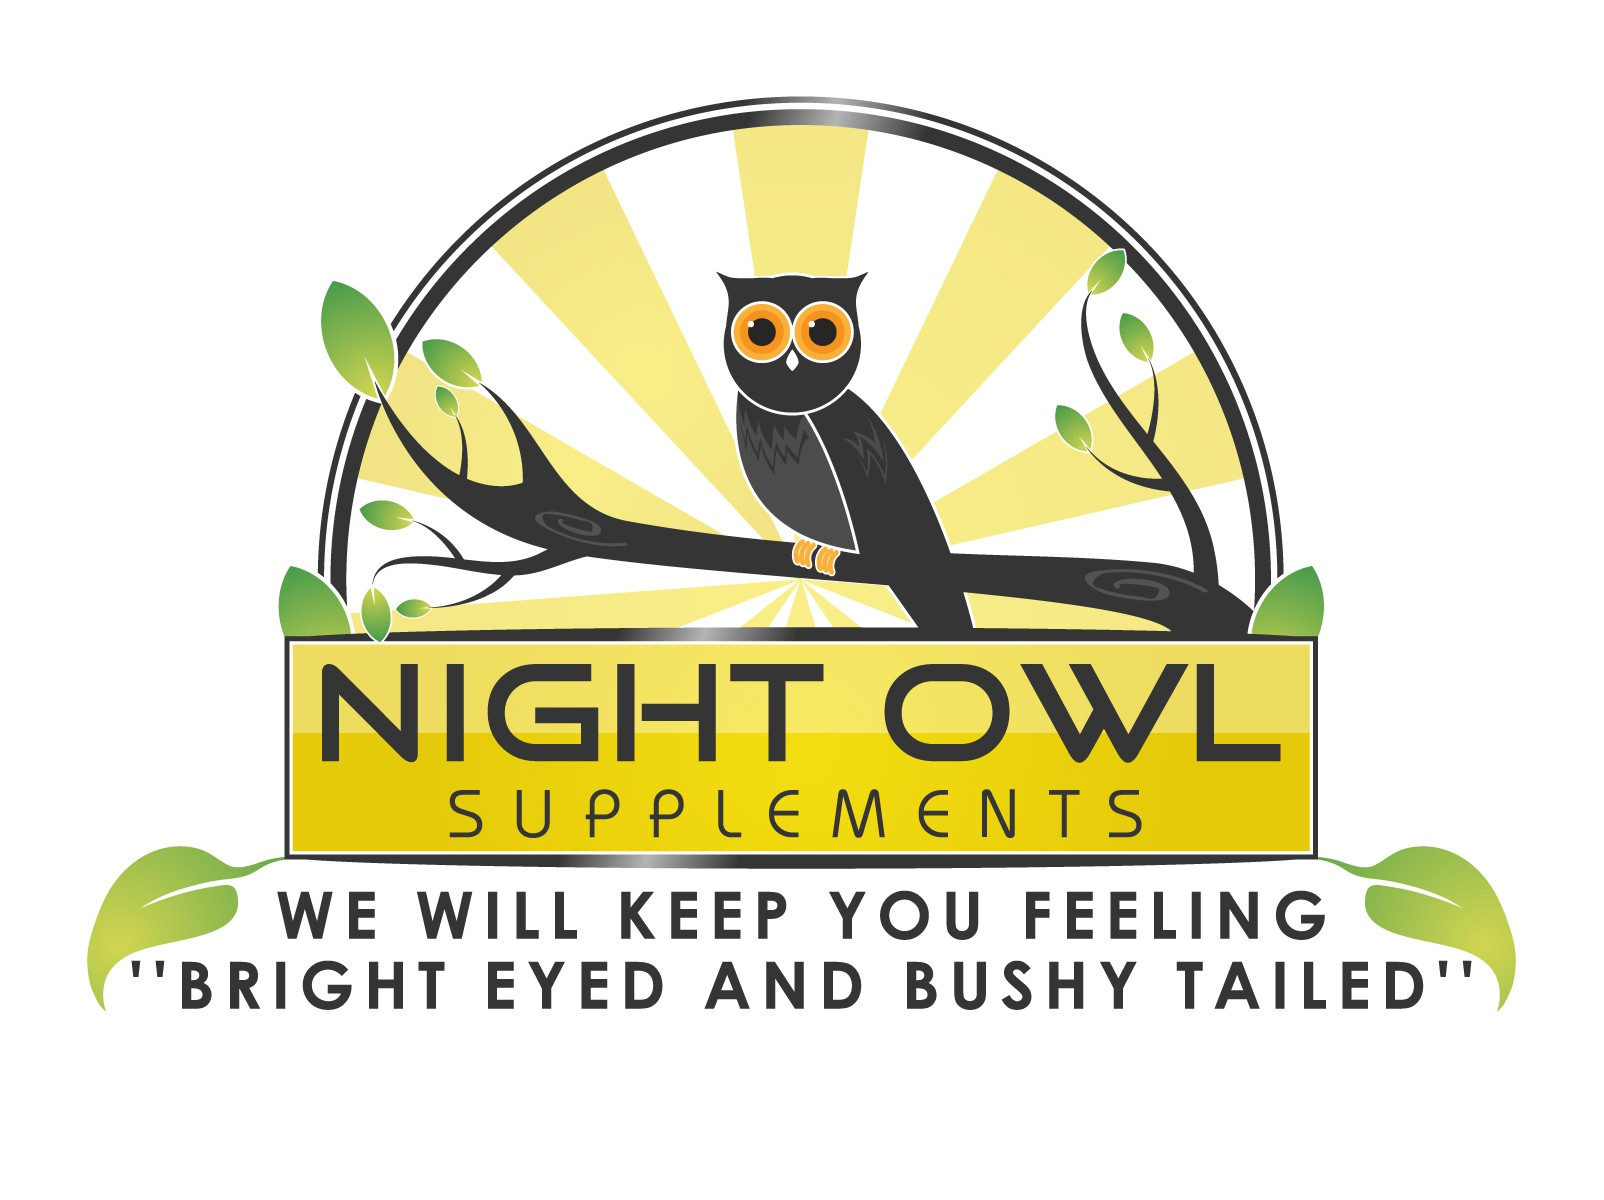 Create a logo with a tree, a small owl, and displaying the tagline.